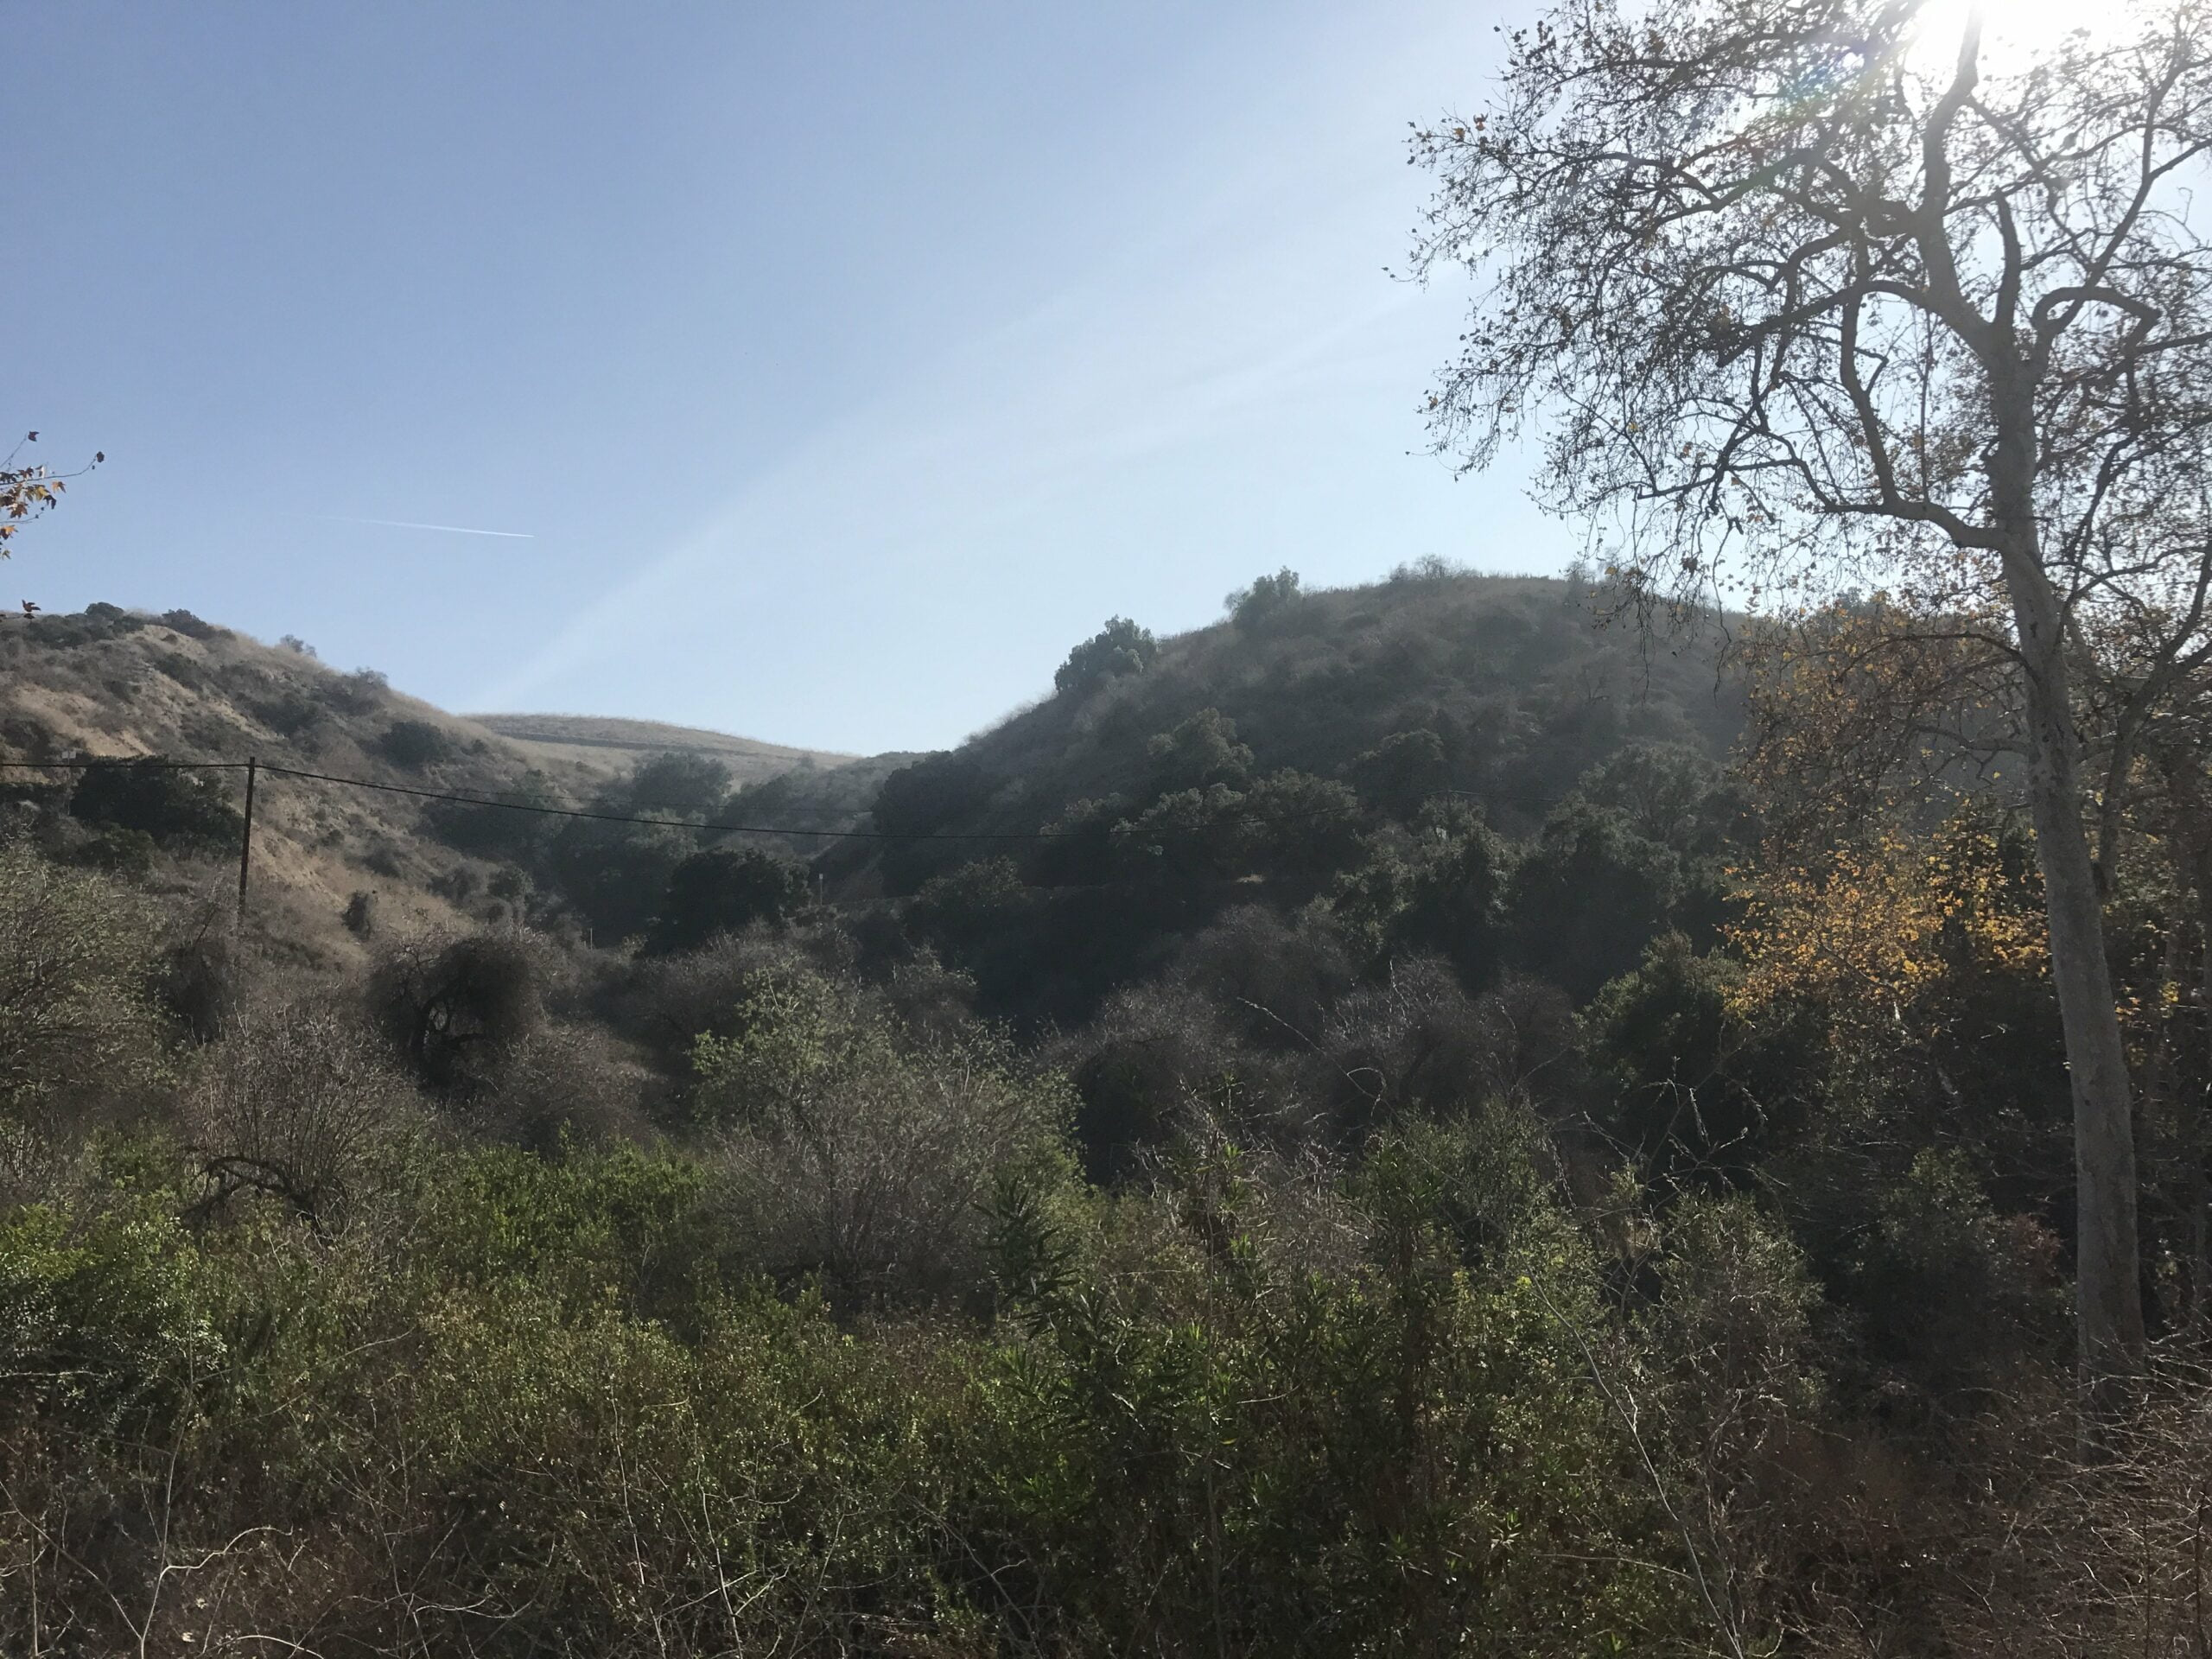 Turnbull Canyon Trail mountains